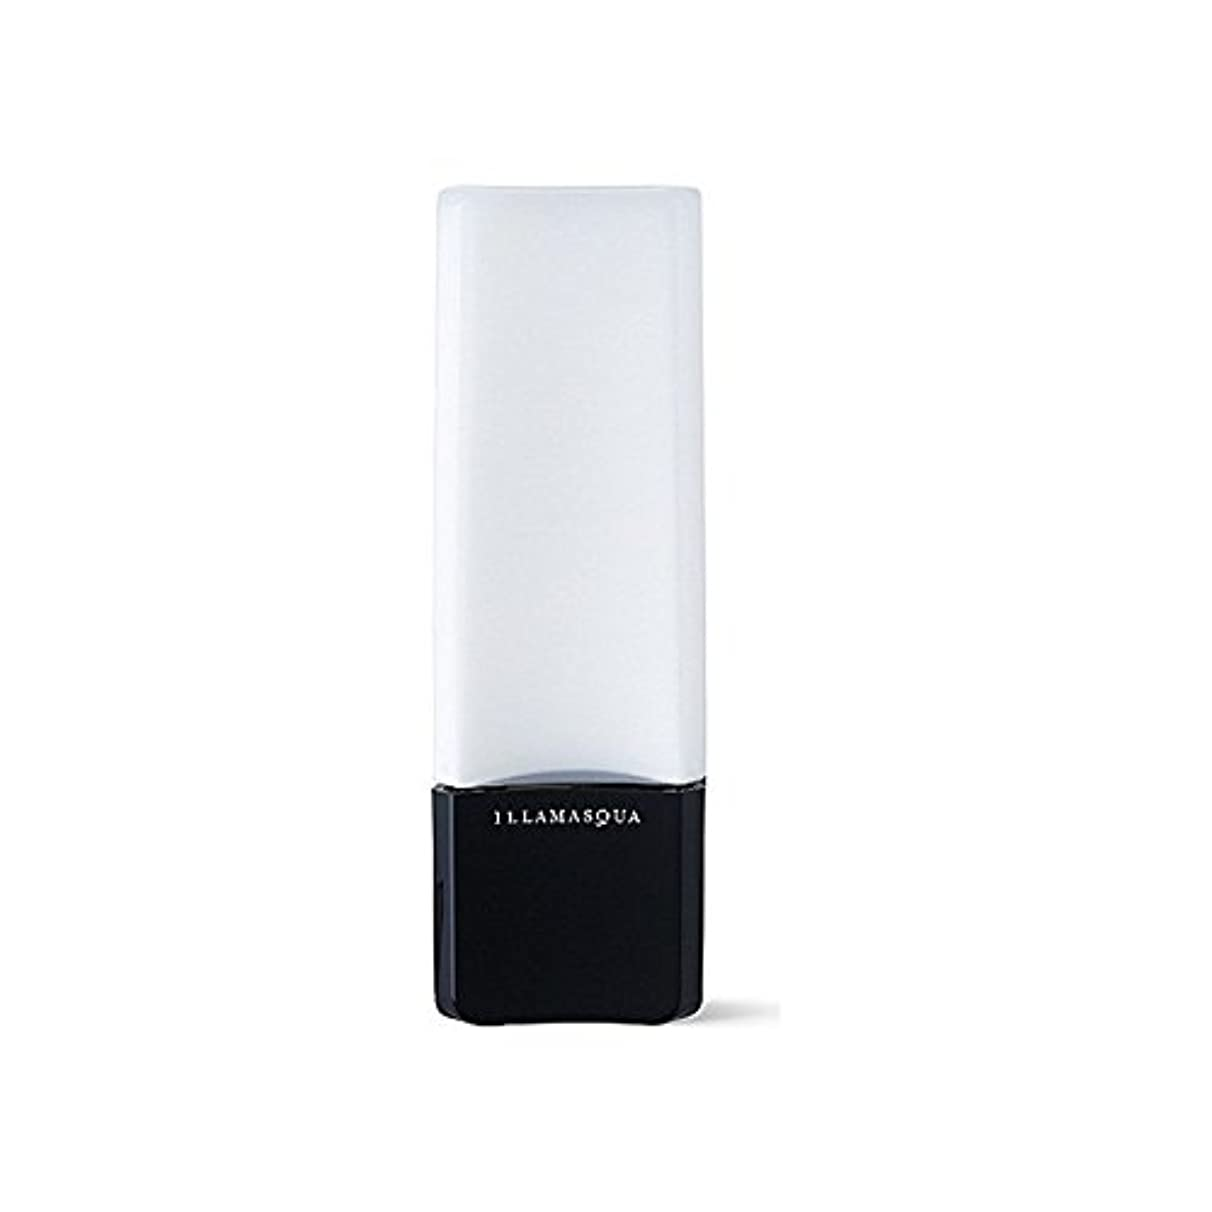 Illamasqua Satin Primer Spf 20 (Pack of 6) - サテンプライマー 20 x6 [並行輸入品]